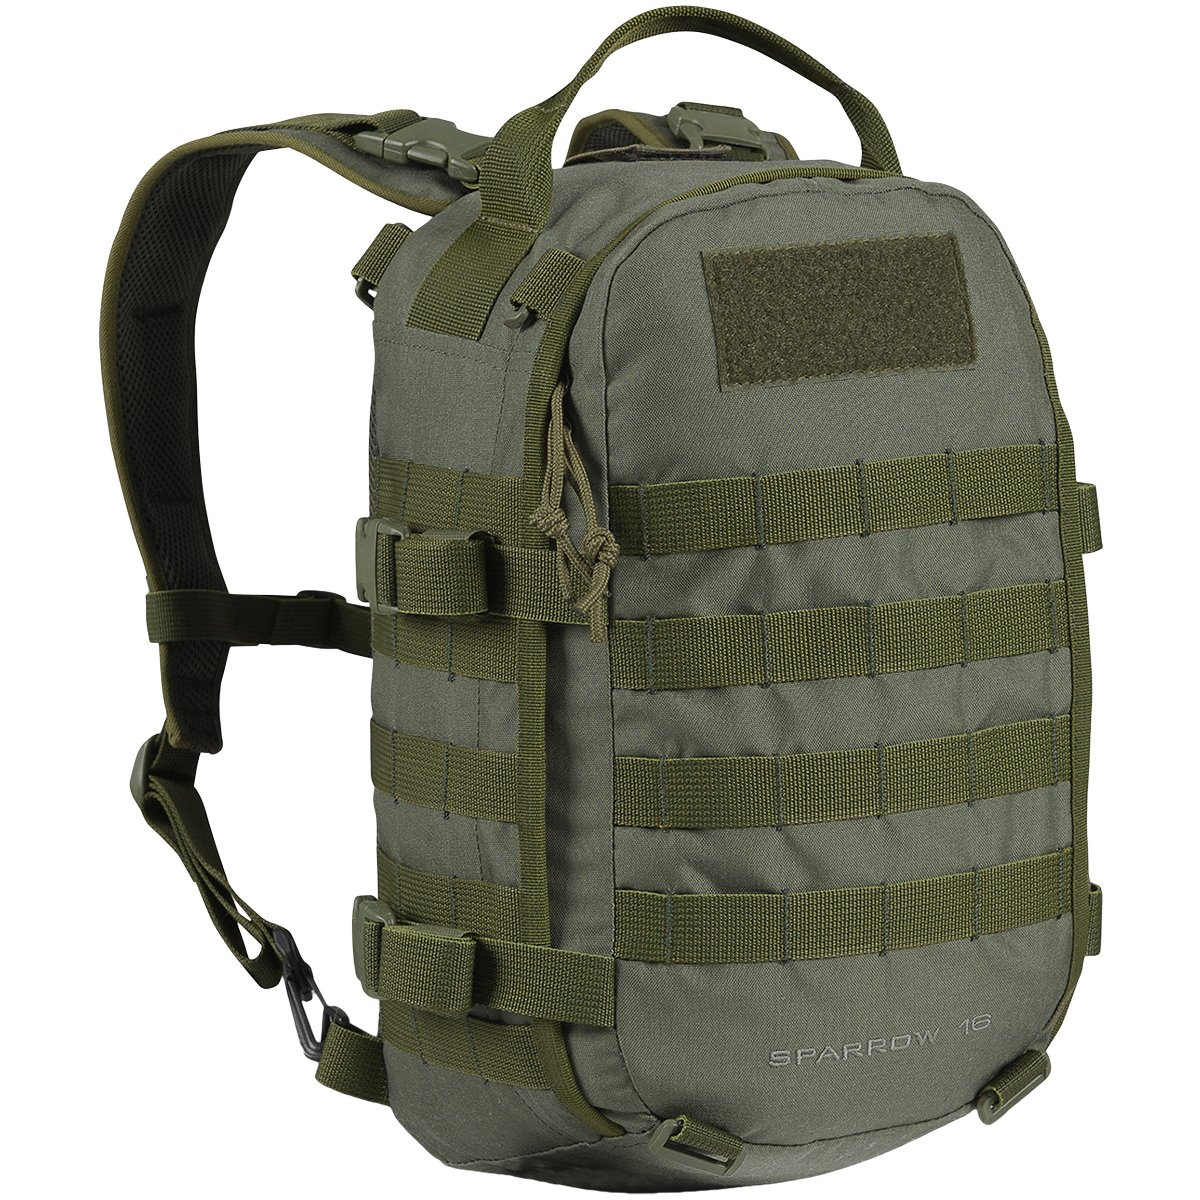 Wisport Sparrow 16lリュックサックOlive Drab   B017A4KDGO